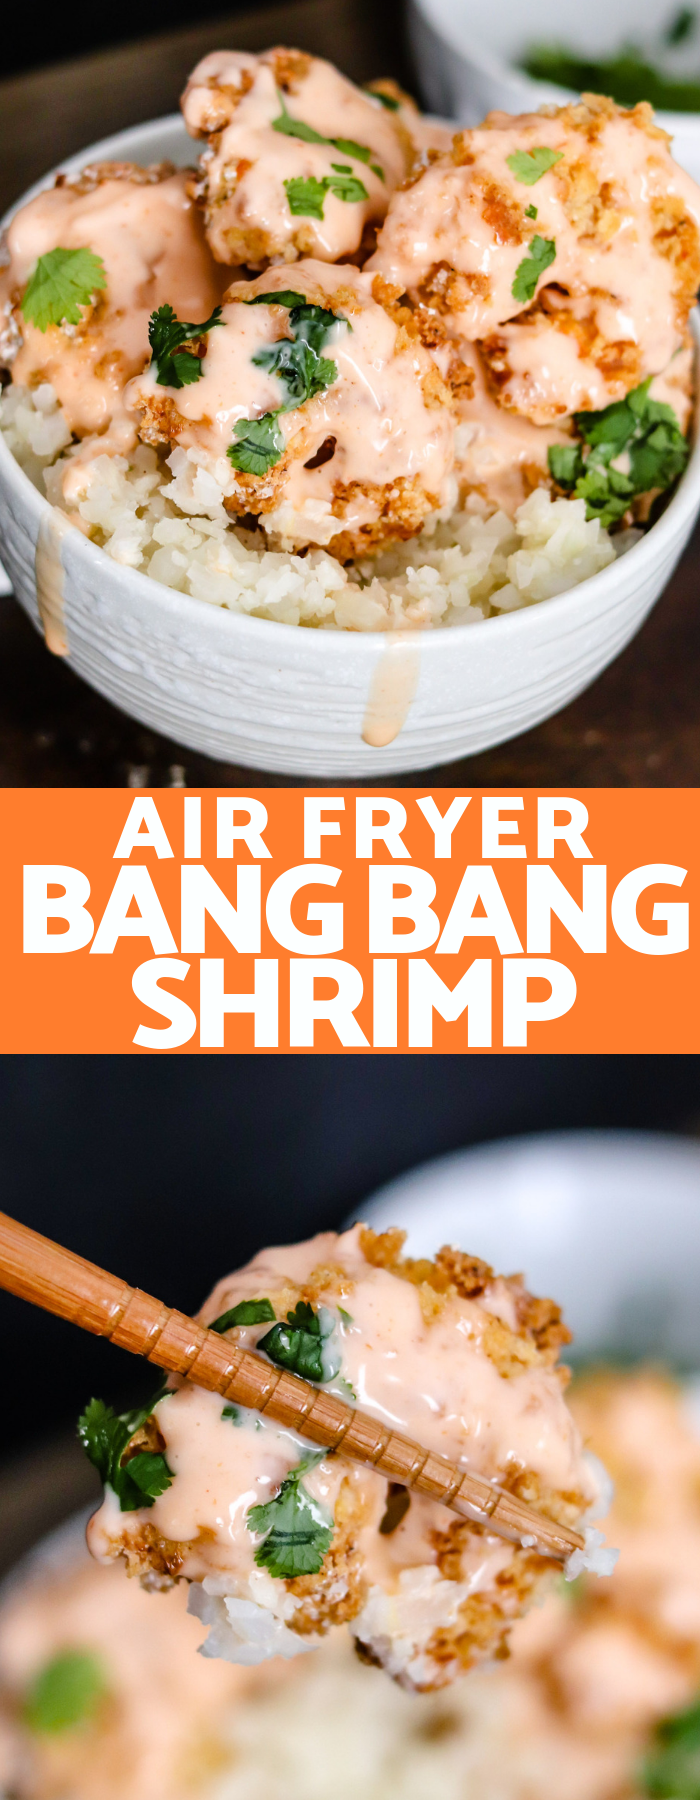 Air Fryer Bang Bang Shrimp are topped with a healthier version of the classic sweet and spicy Bang Bang Sauce; the perfect lightened up appetizer or meal!